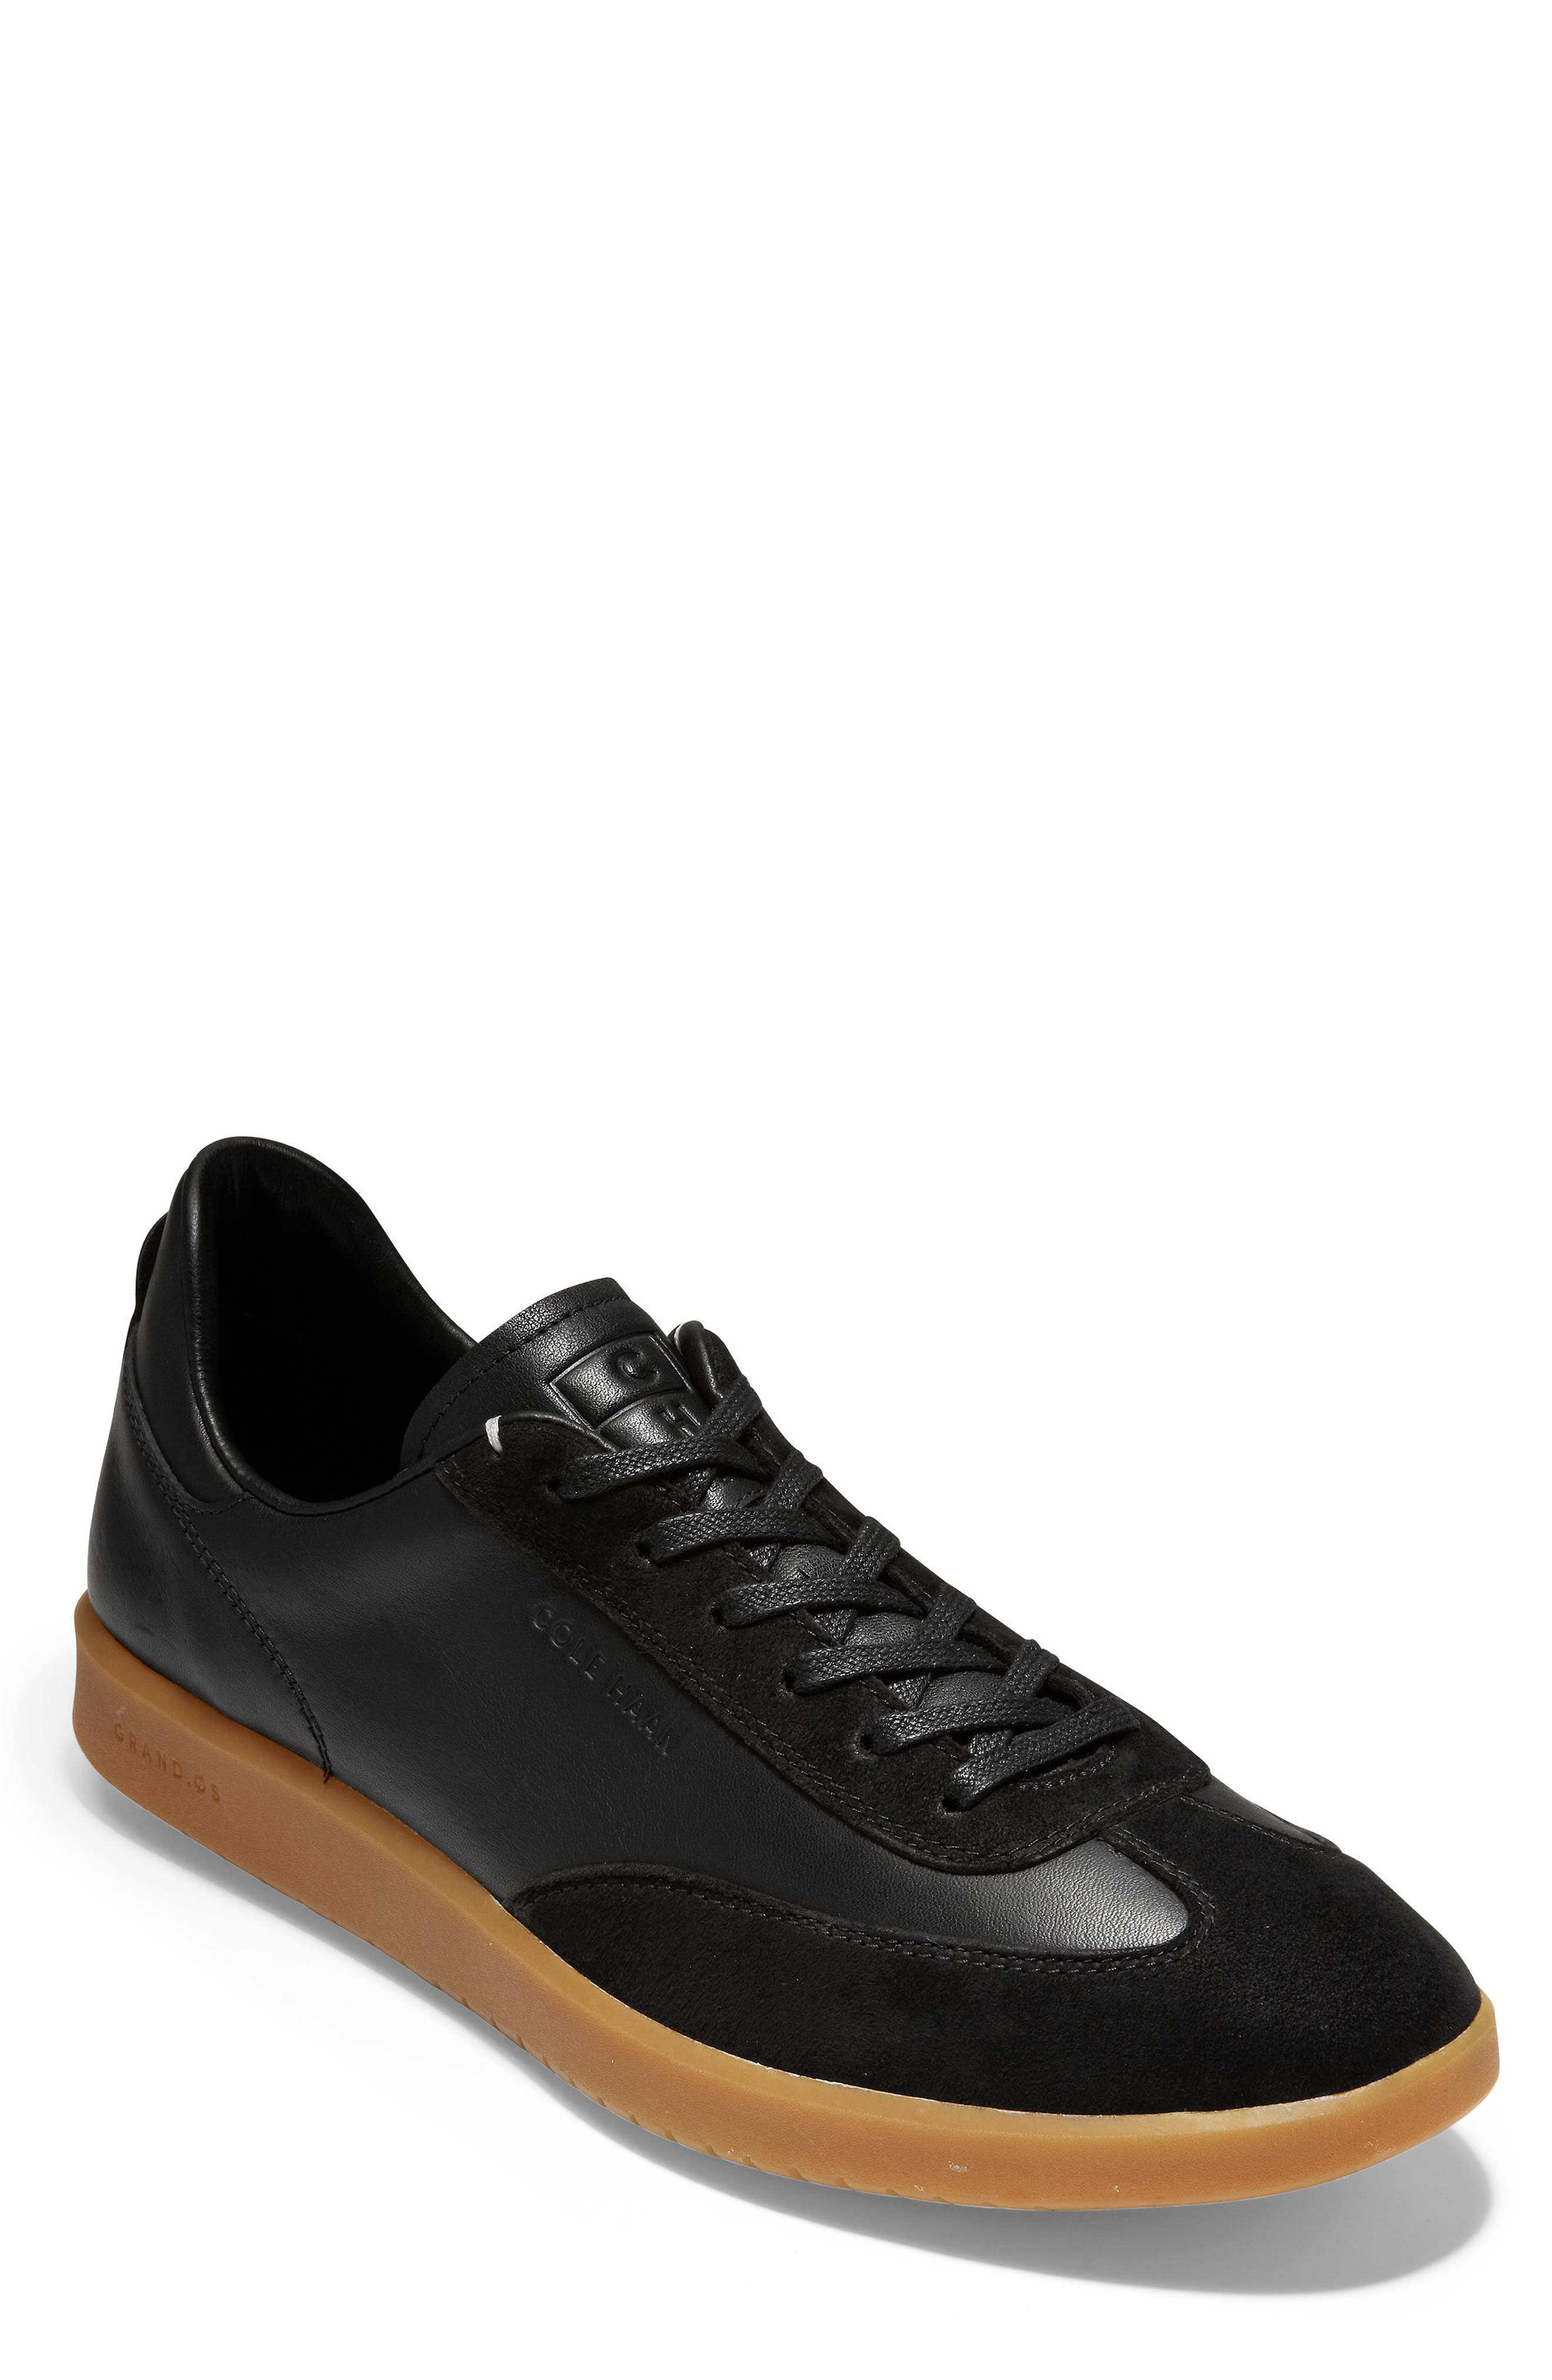 GrandPro Turf Sneaker,                             Main thumbnail 1, color,                             BLACK LEATHER/ SUEDE